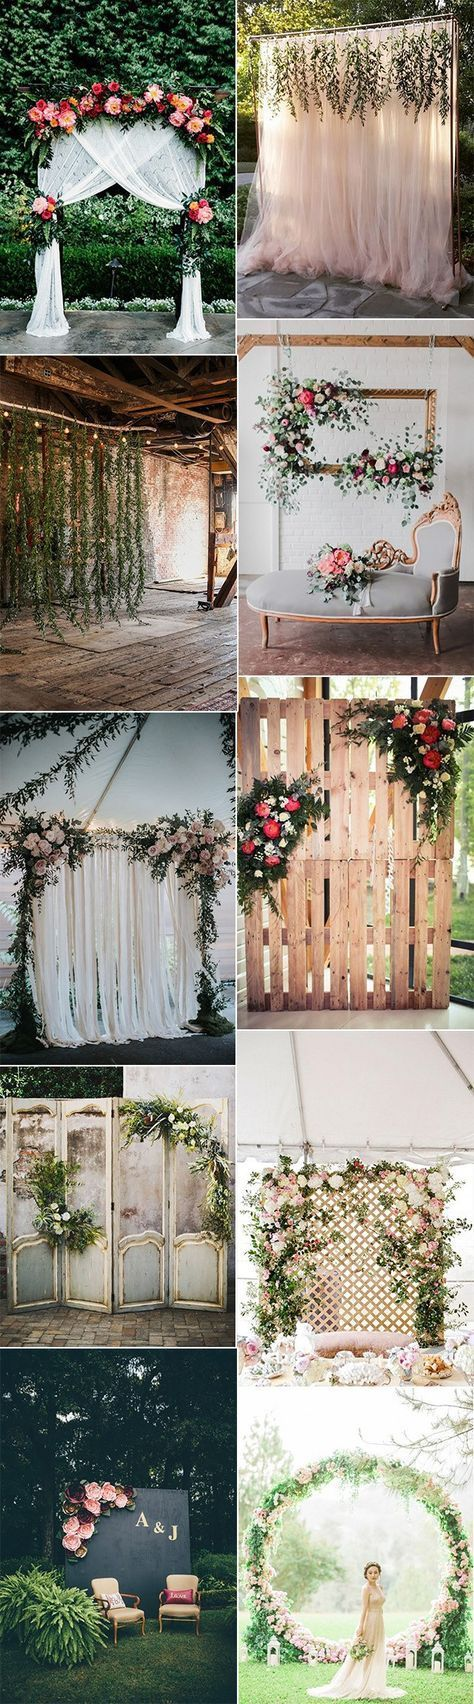 Trending-15 Hottest Wedding Backdrop Ideas for Your Ceremony